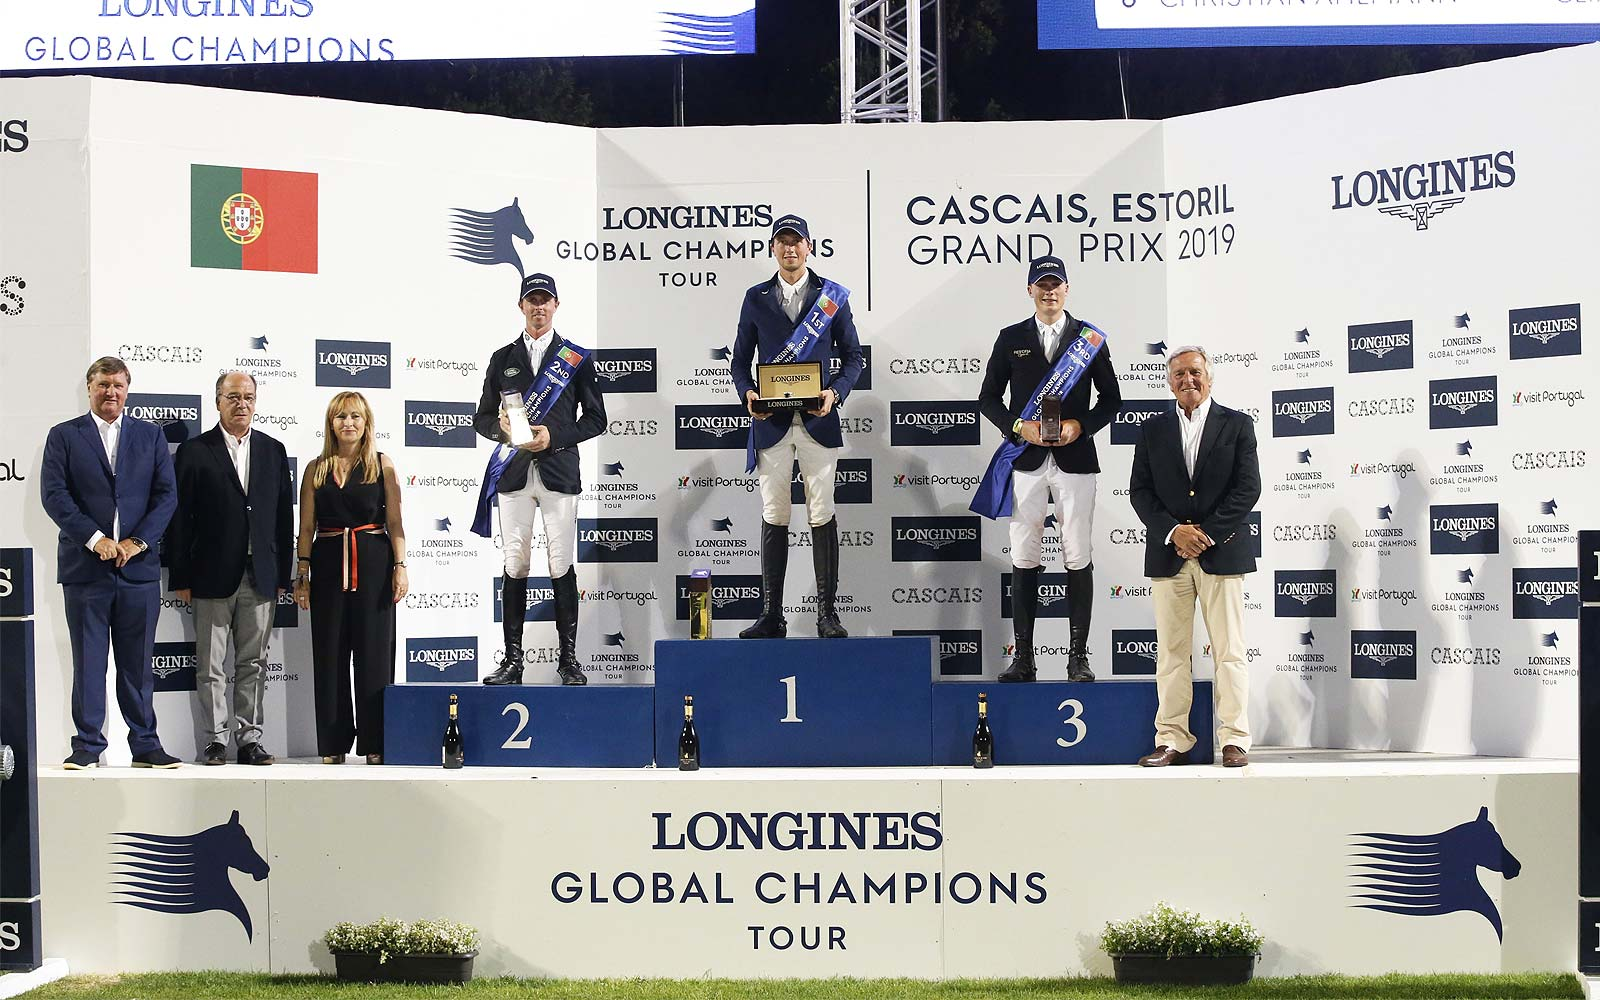 Martin Fuchs (SUI) on Chaplin claimed victory at the Longines Global Champions Tour of Cascais